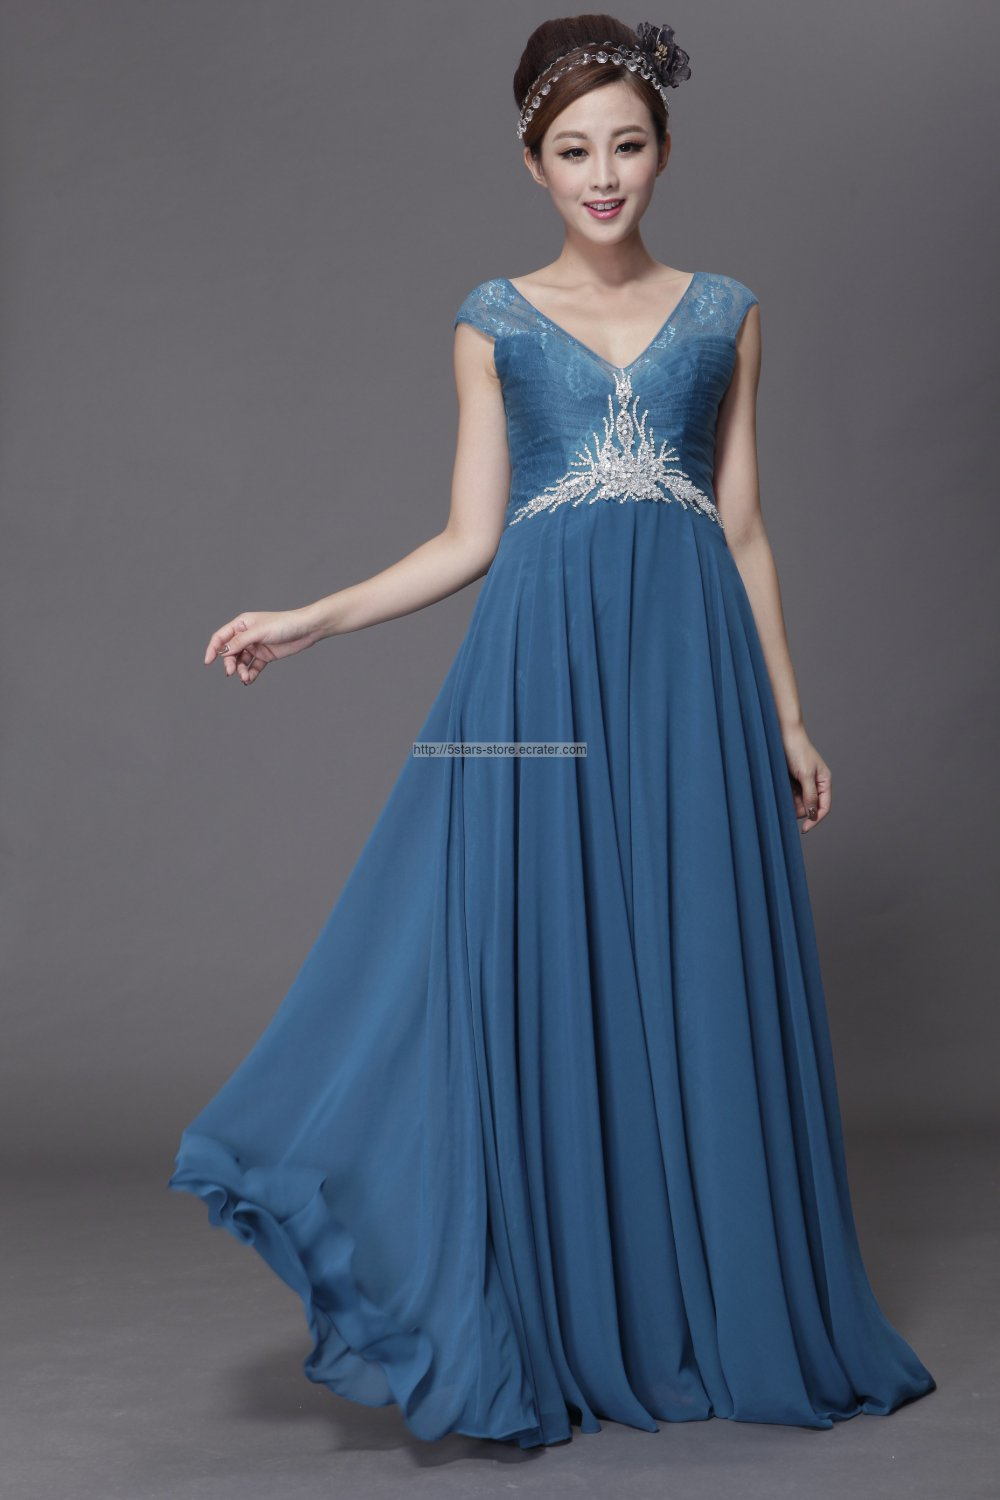 Enchanting Stores Party Dresses Gallery - All Wedding Dresses ...